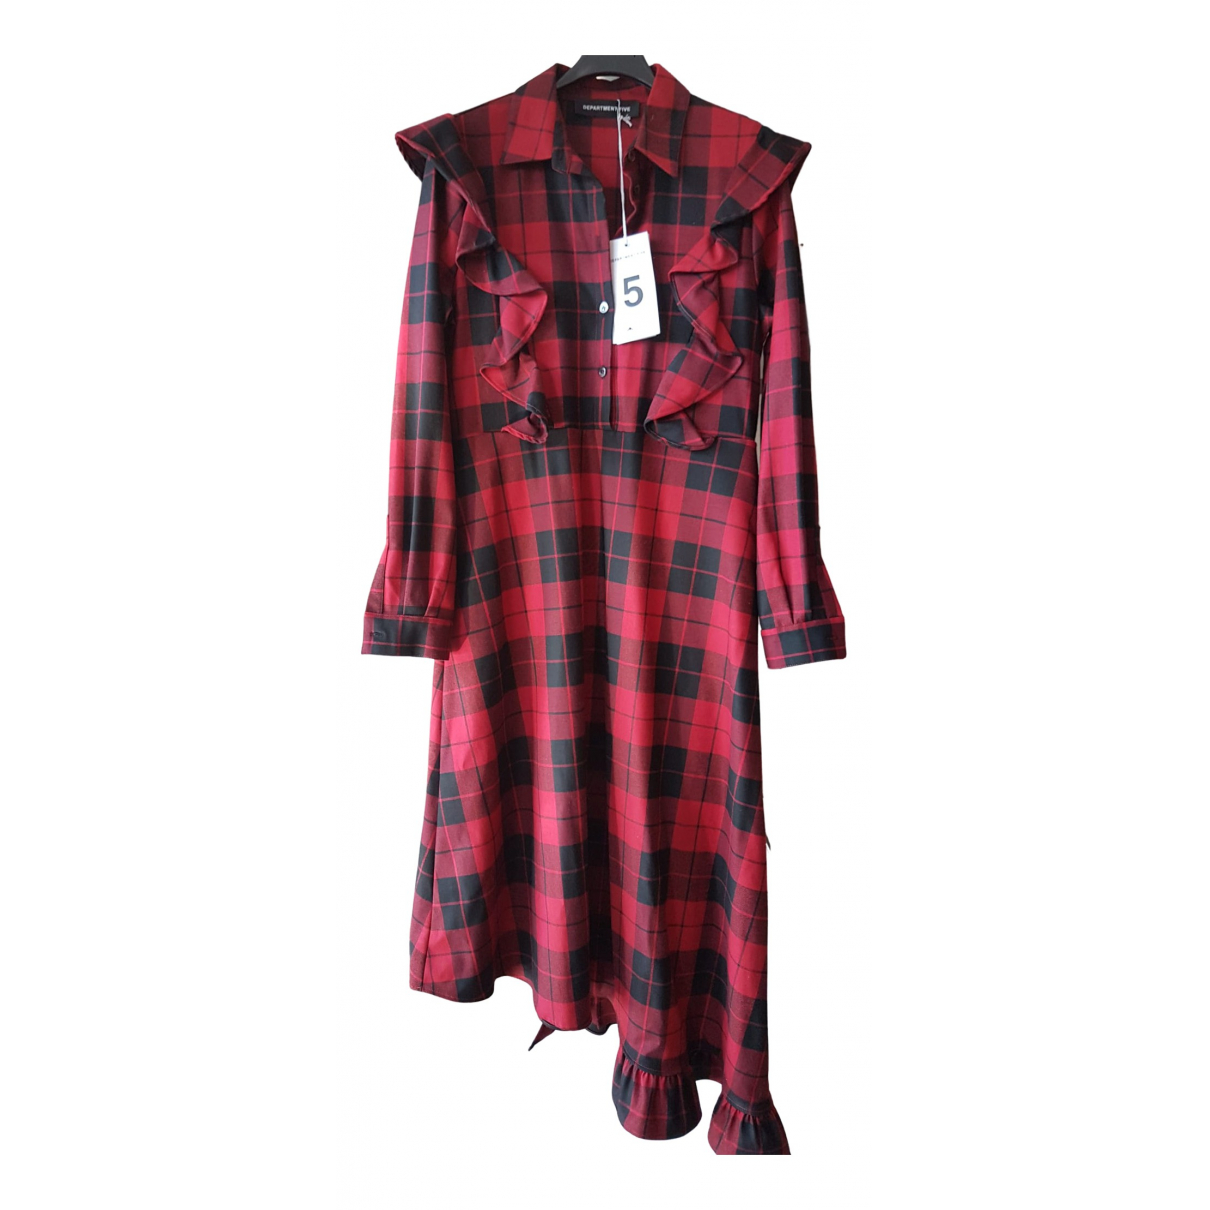 Department 5 - Robe   pour femme - rouge